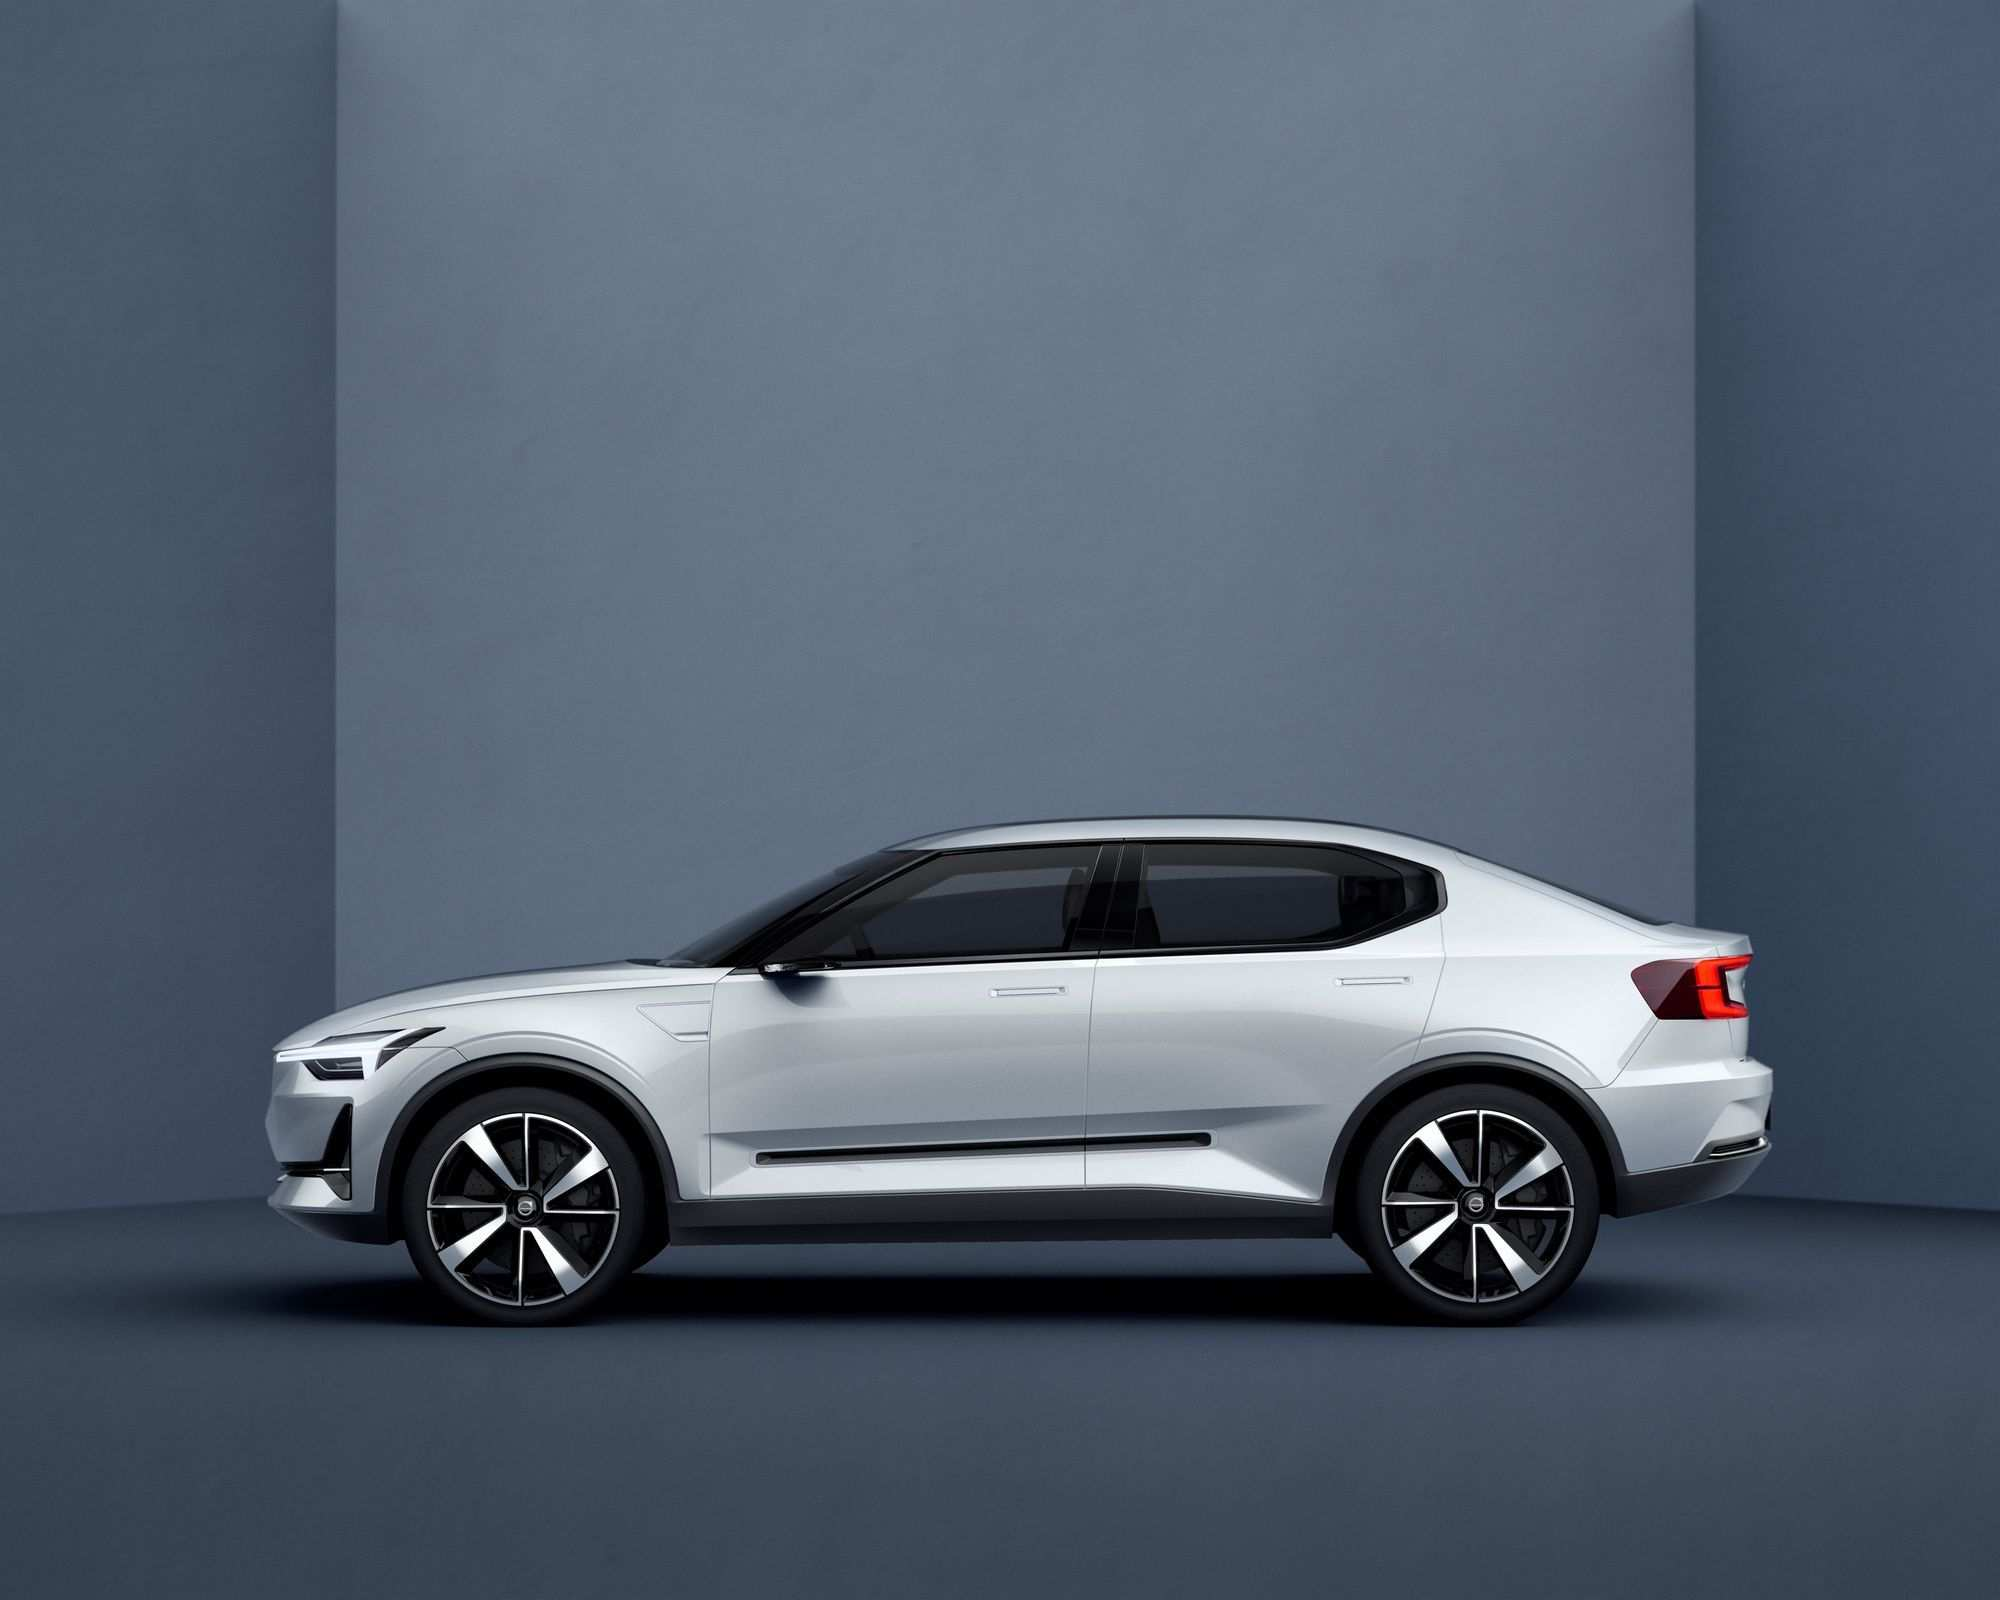 49 Gallery of The Volvo Phev 2019 Performance And New Engine Spy Shoot with The Volvo Phev 2019 Performance And New Engine